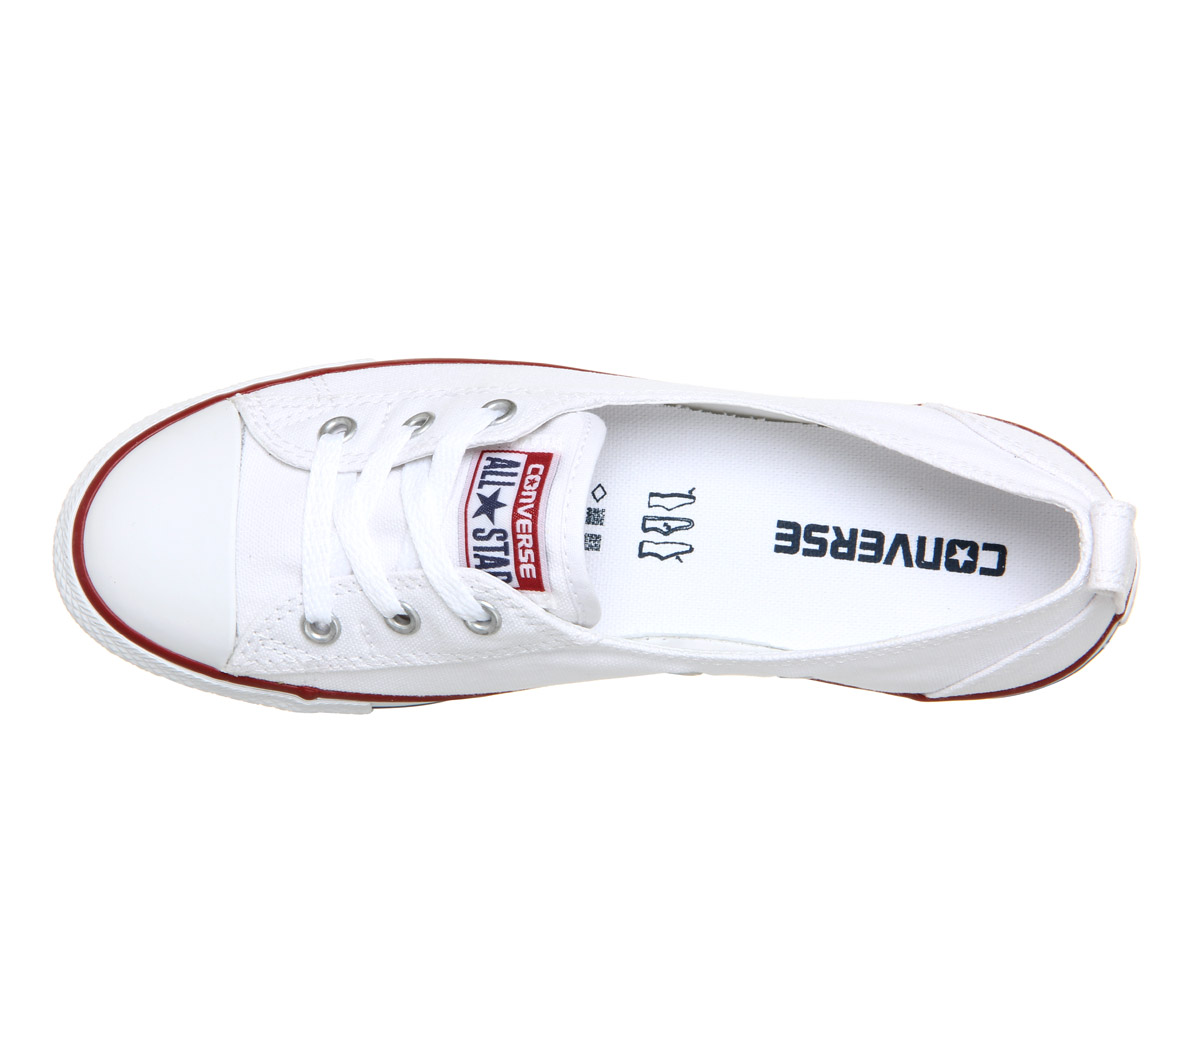 5e8c53aaa962e7 Sentinel Womens Converse Ctas Ballet Lace Optical White Trainers Shoes